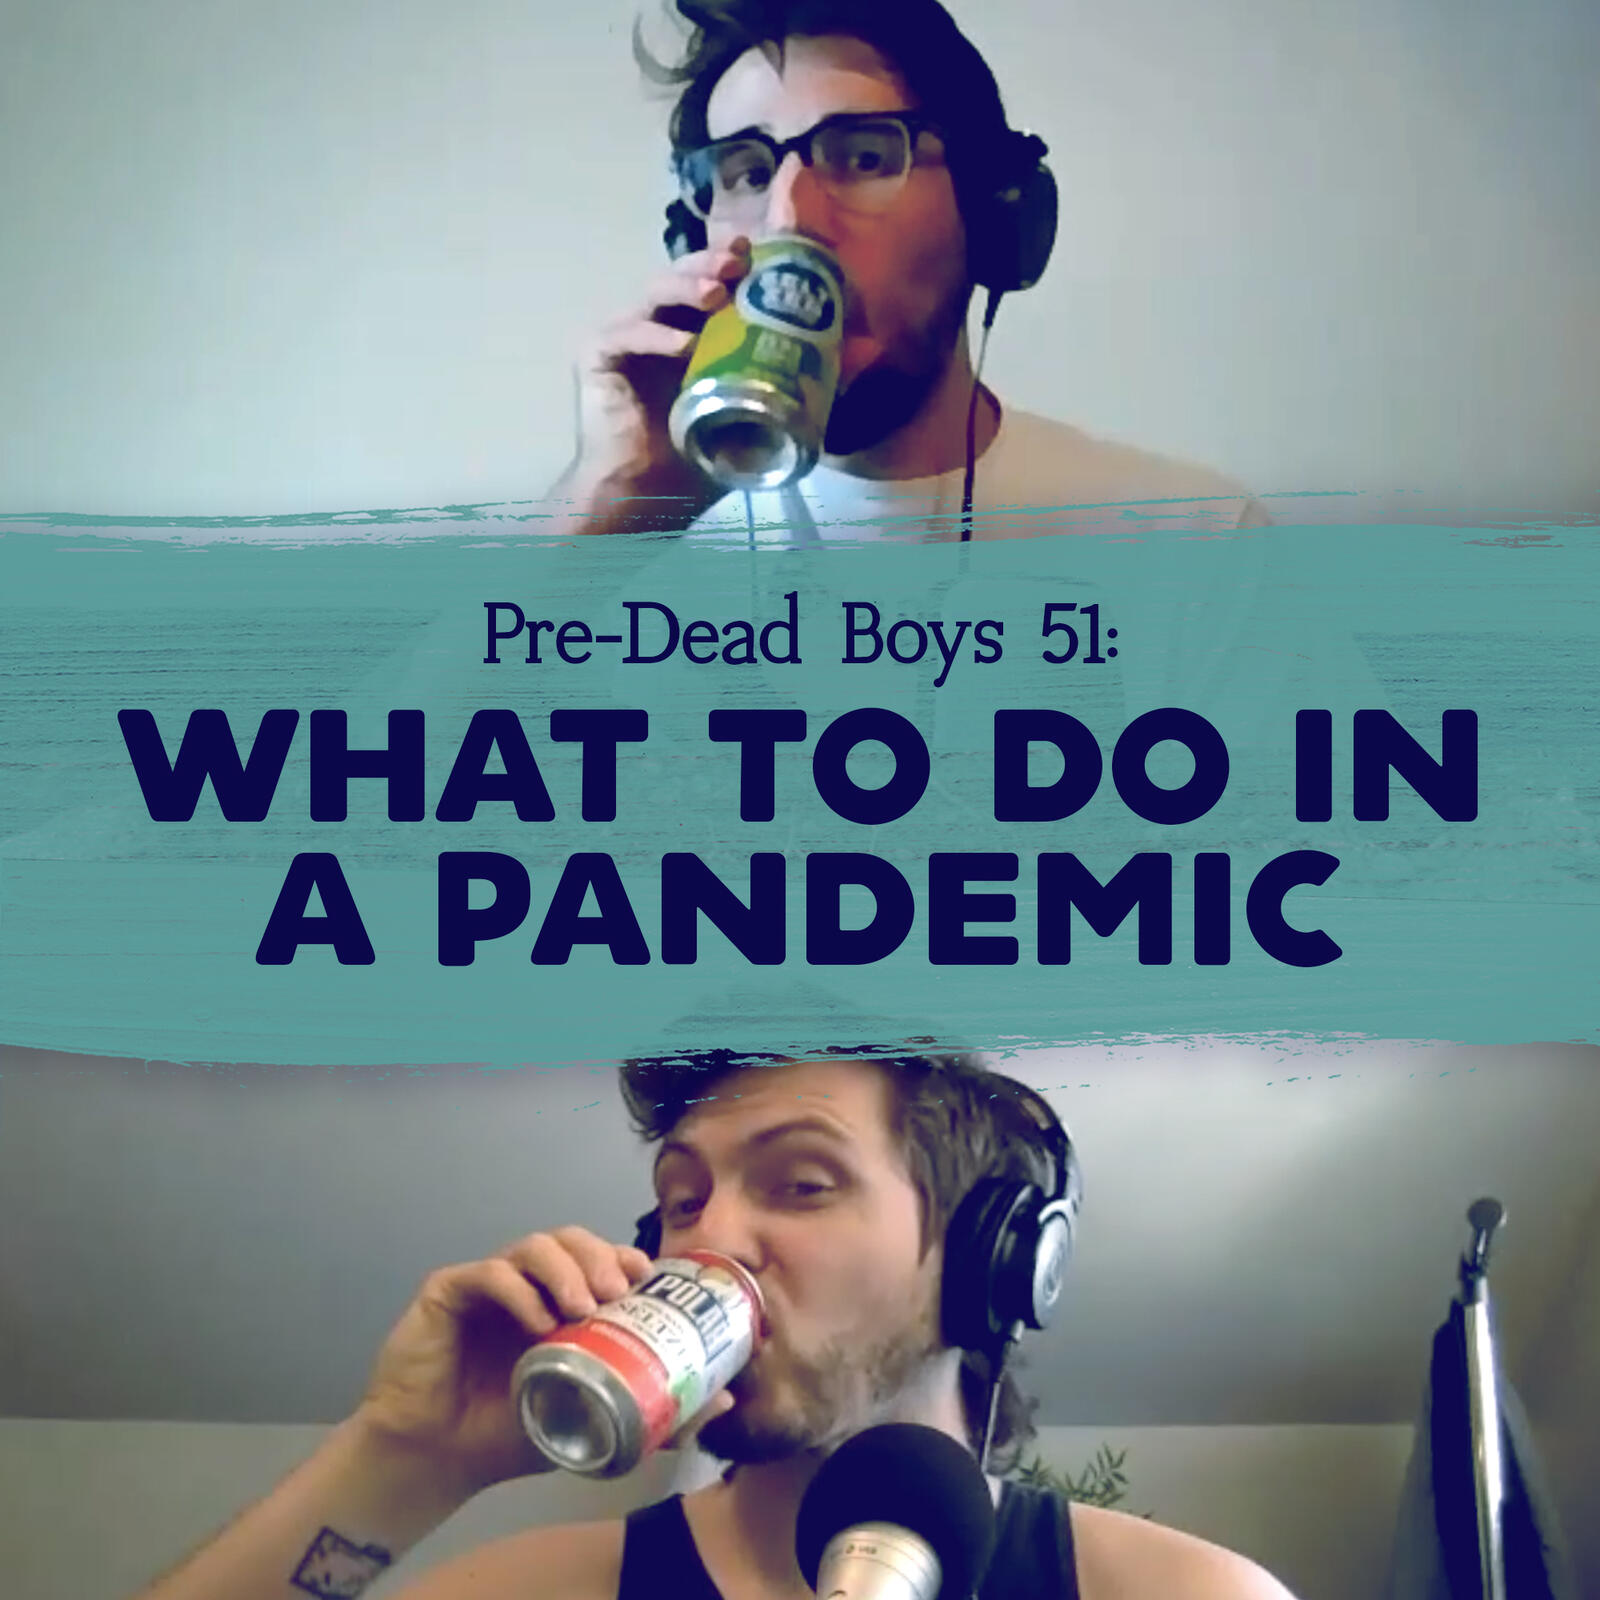 51: What to Do in a Pandemic